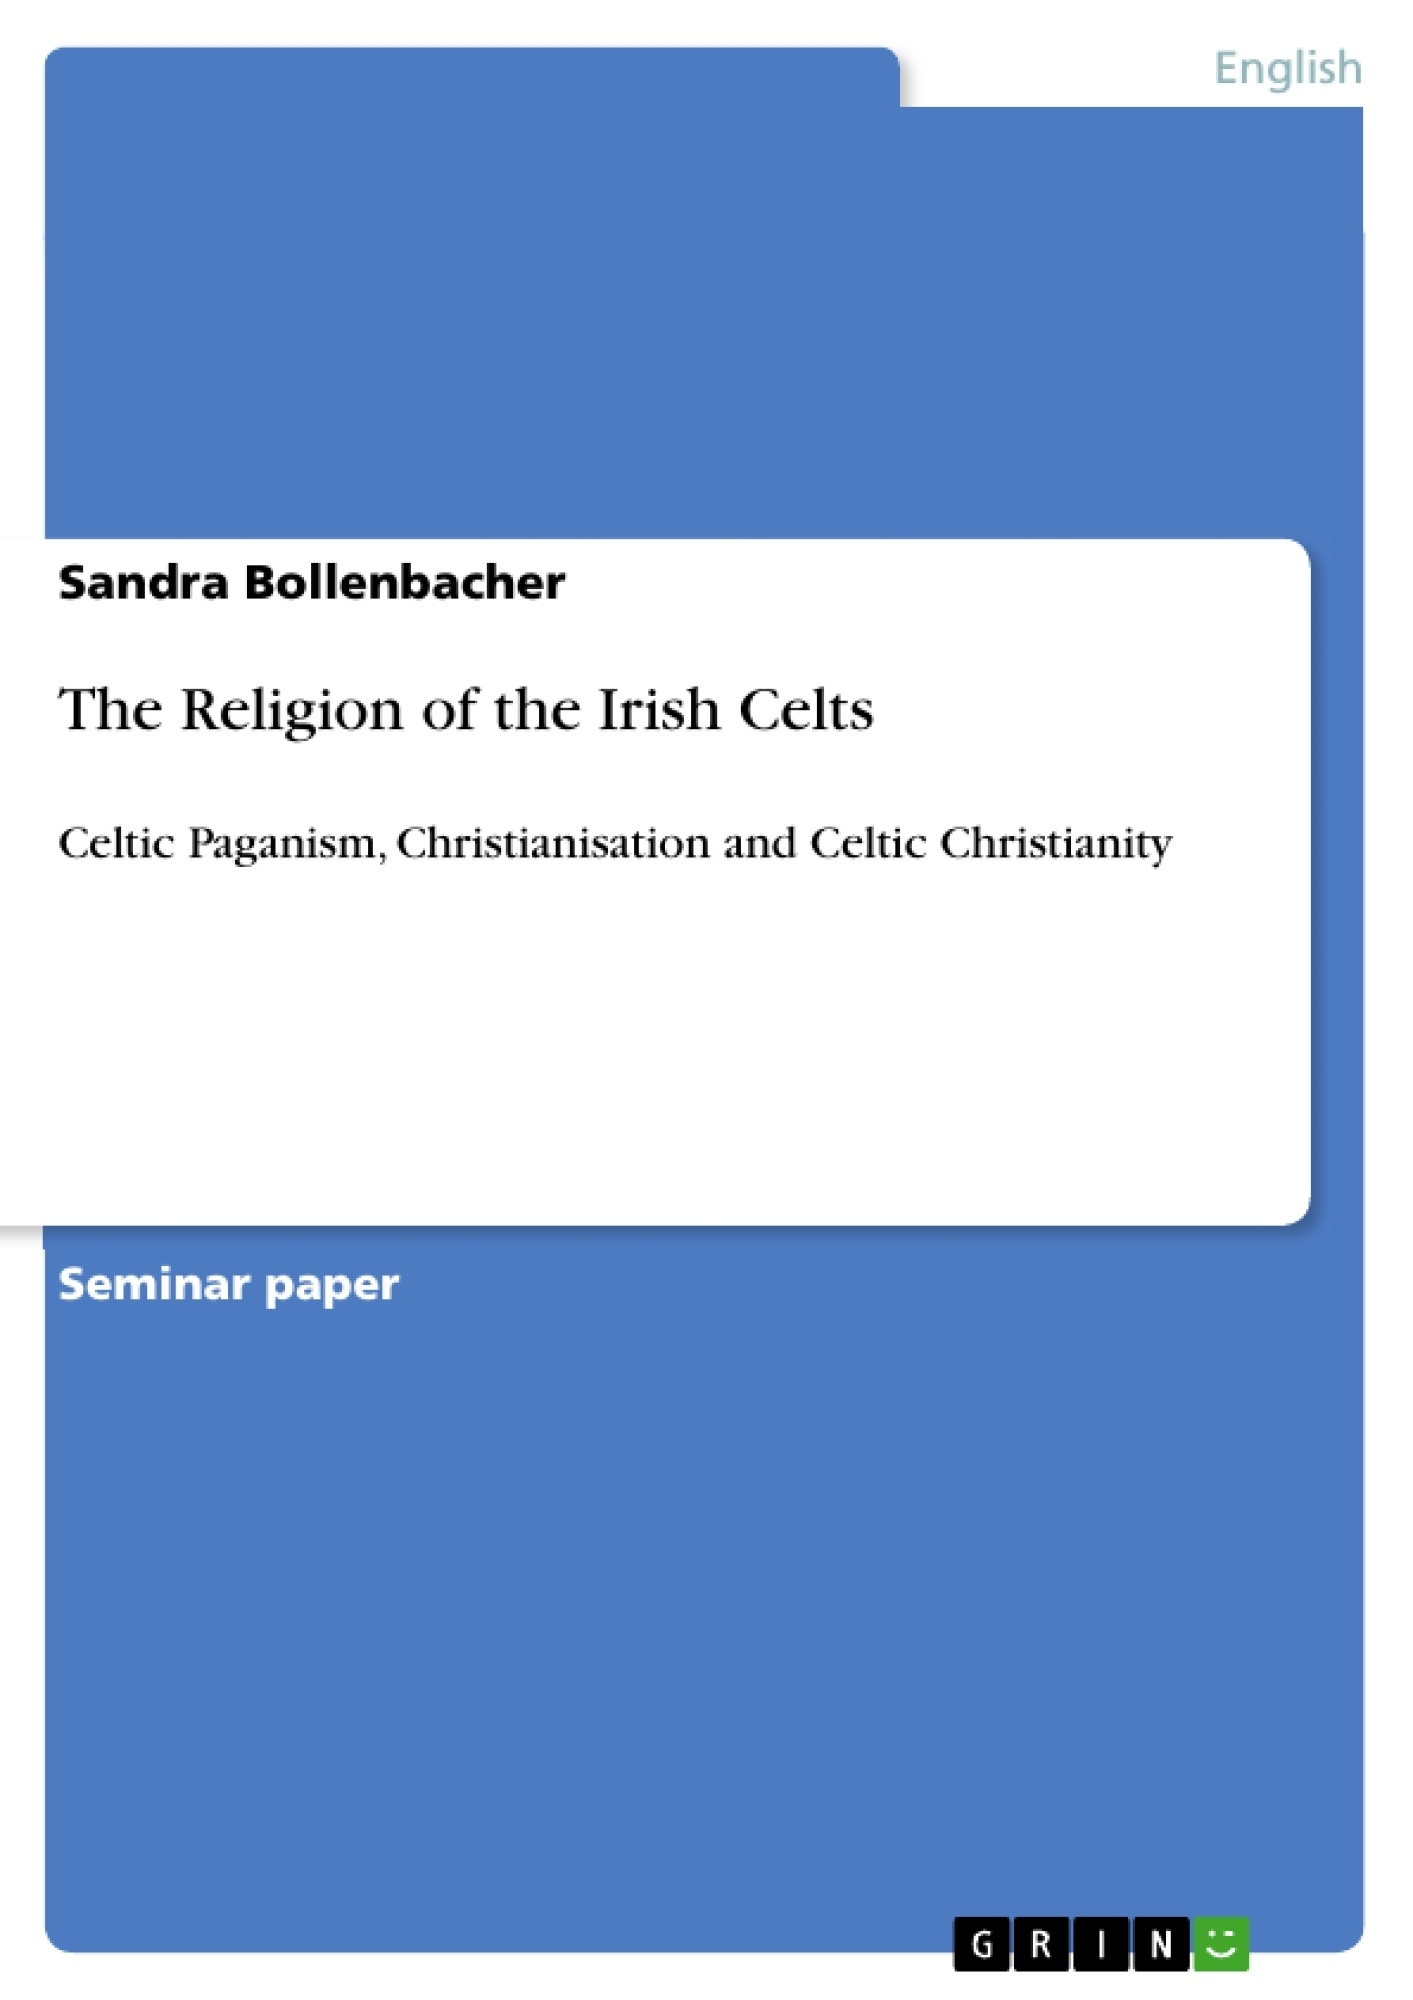 Title: The Religion of the Irish Celts